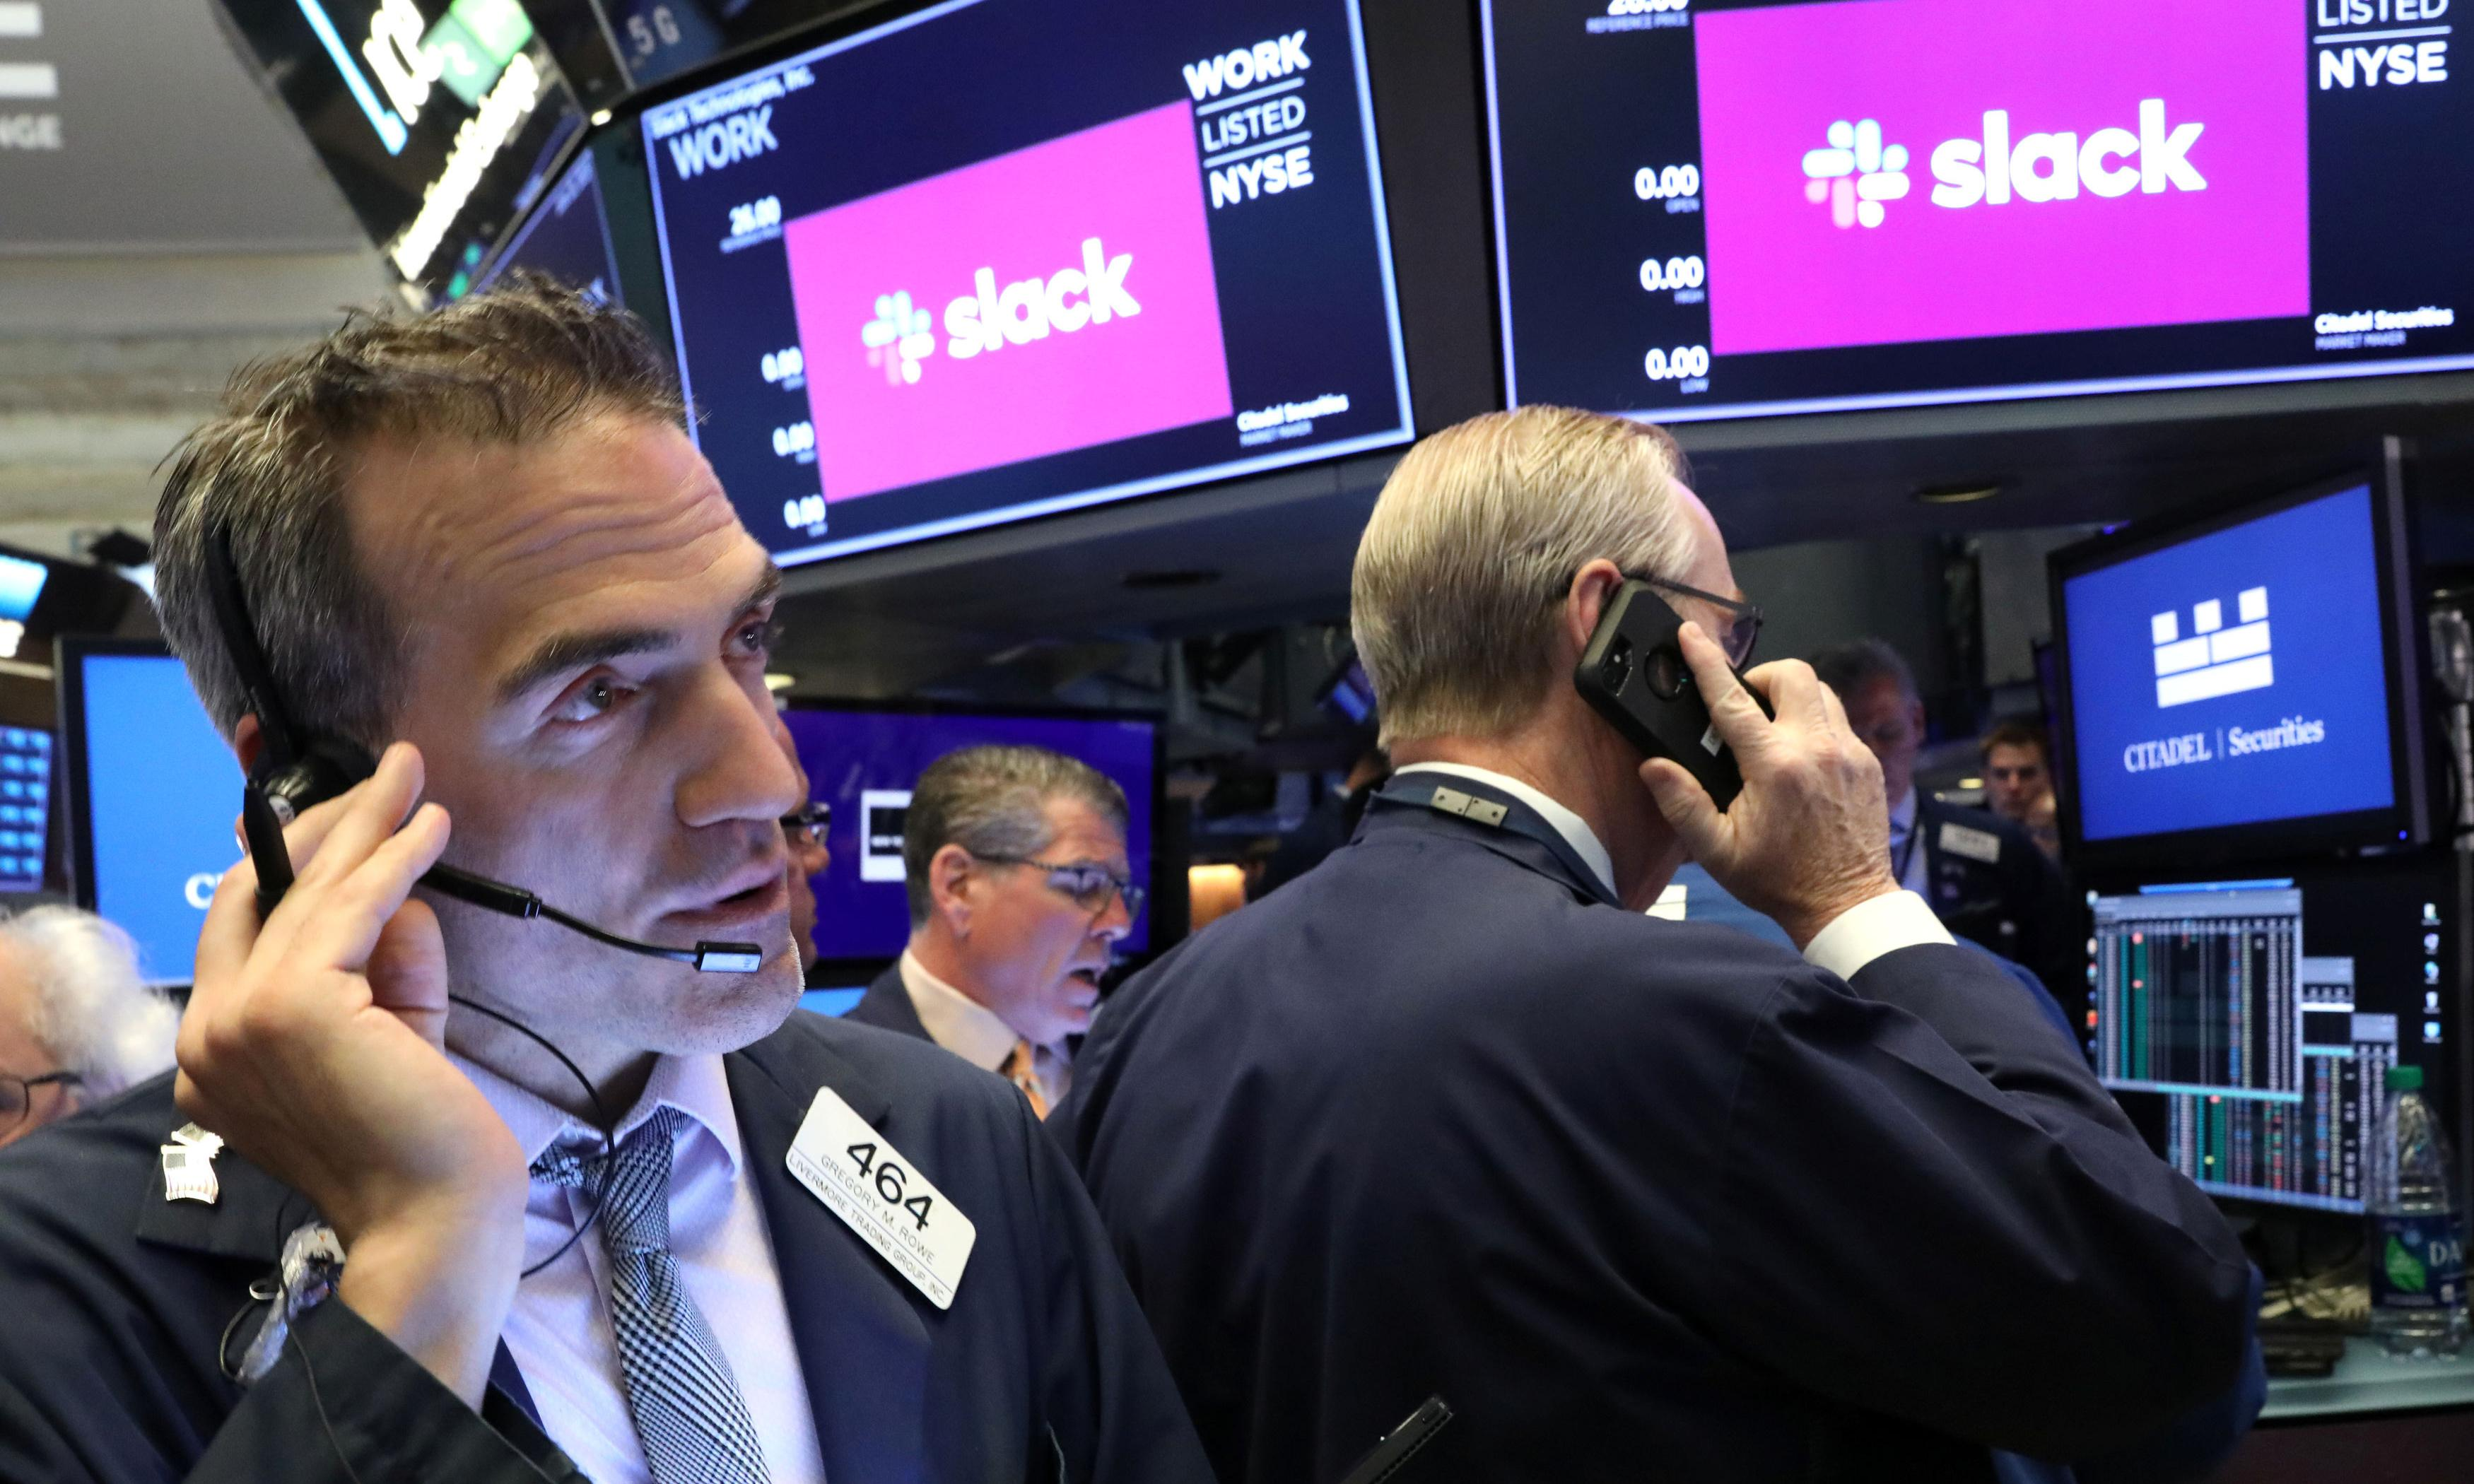 Slack IPO: stocks sell at 50% higher than expected as company's value tops $20bn